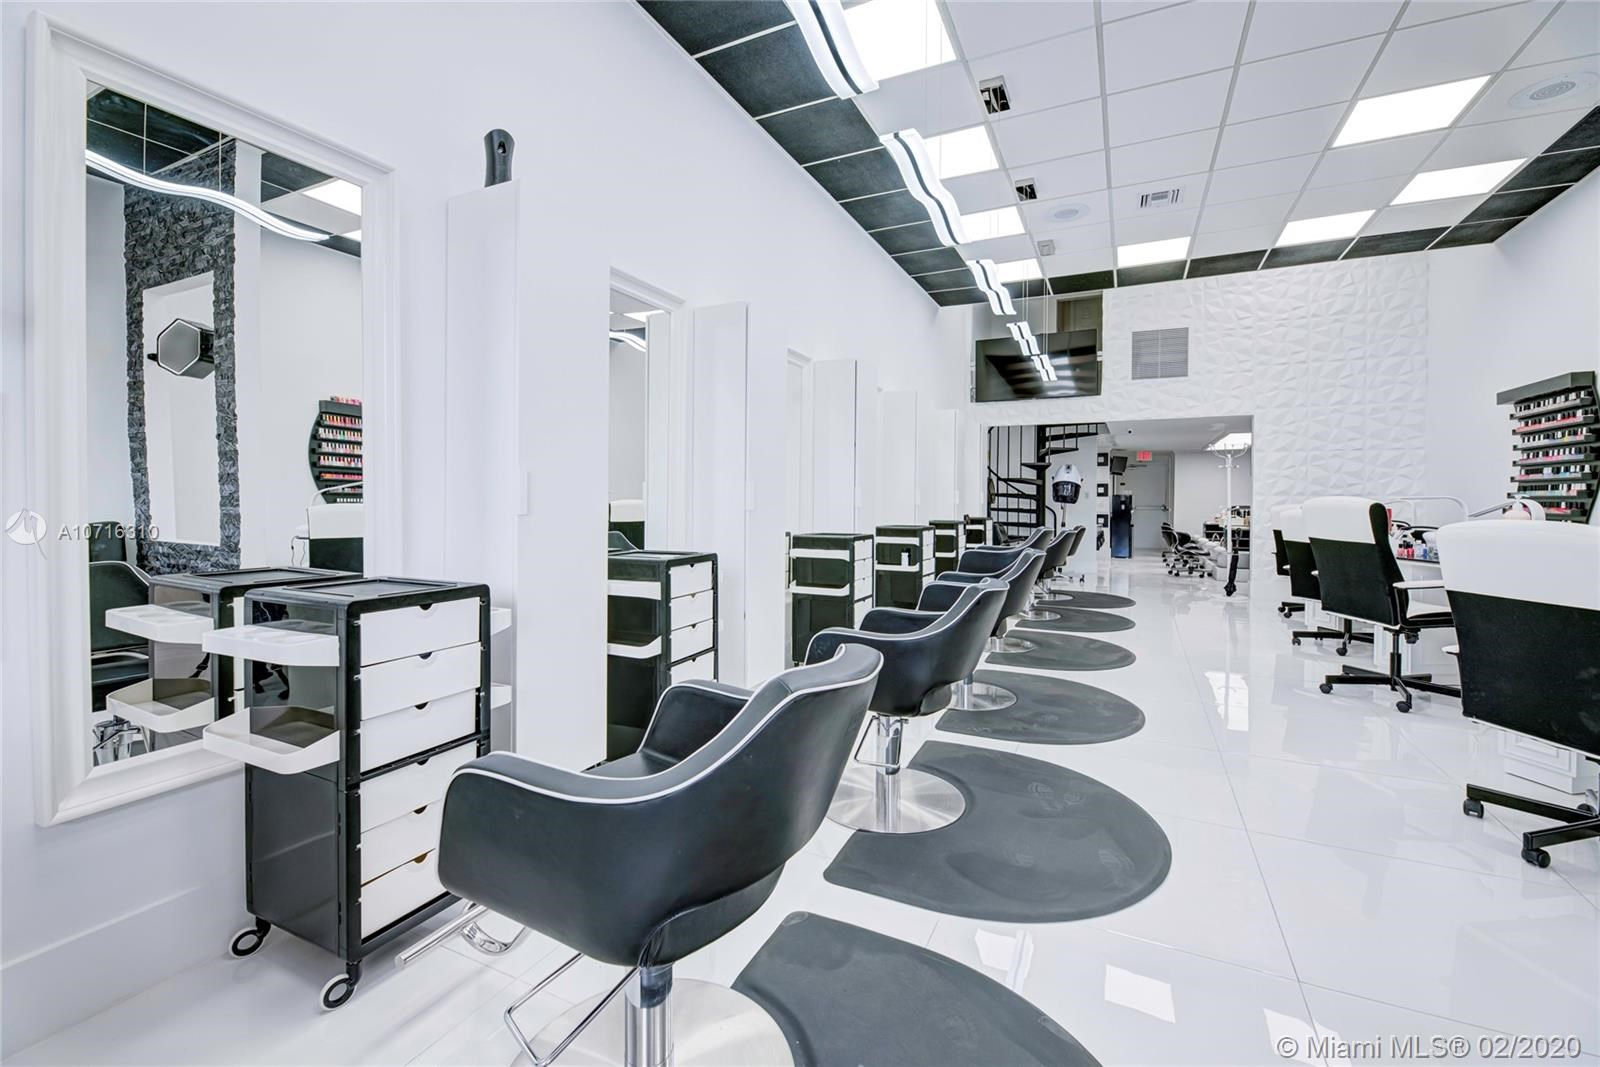 Beauty & Nail Salon by  Dolphin Mall, Sweetwater, FL 33172